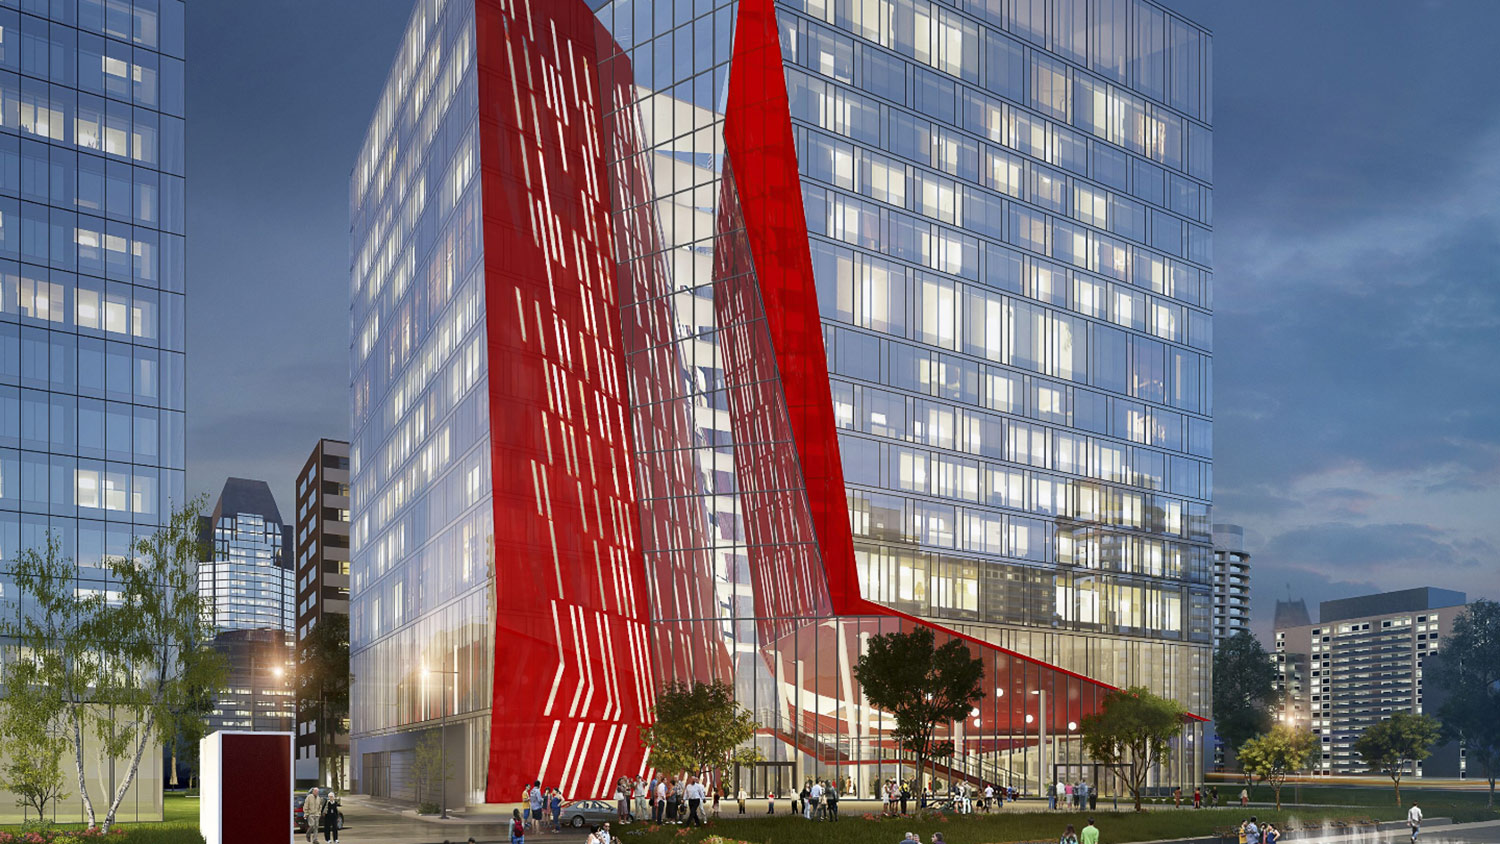 The new NFB building in downtown Montreal, which will open later this year.